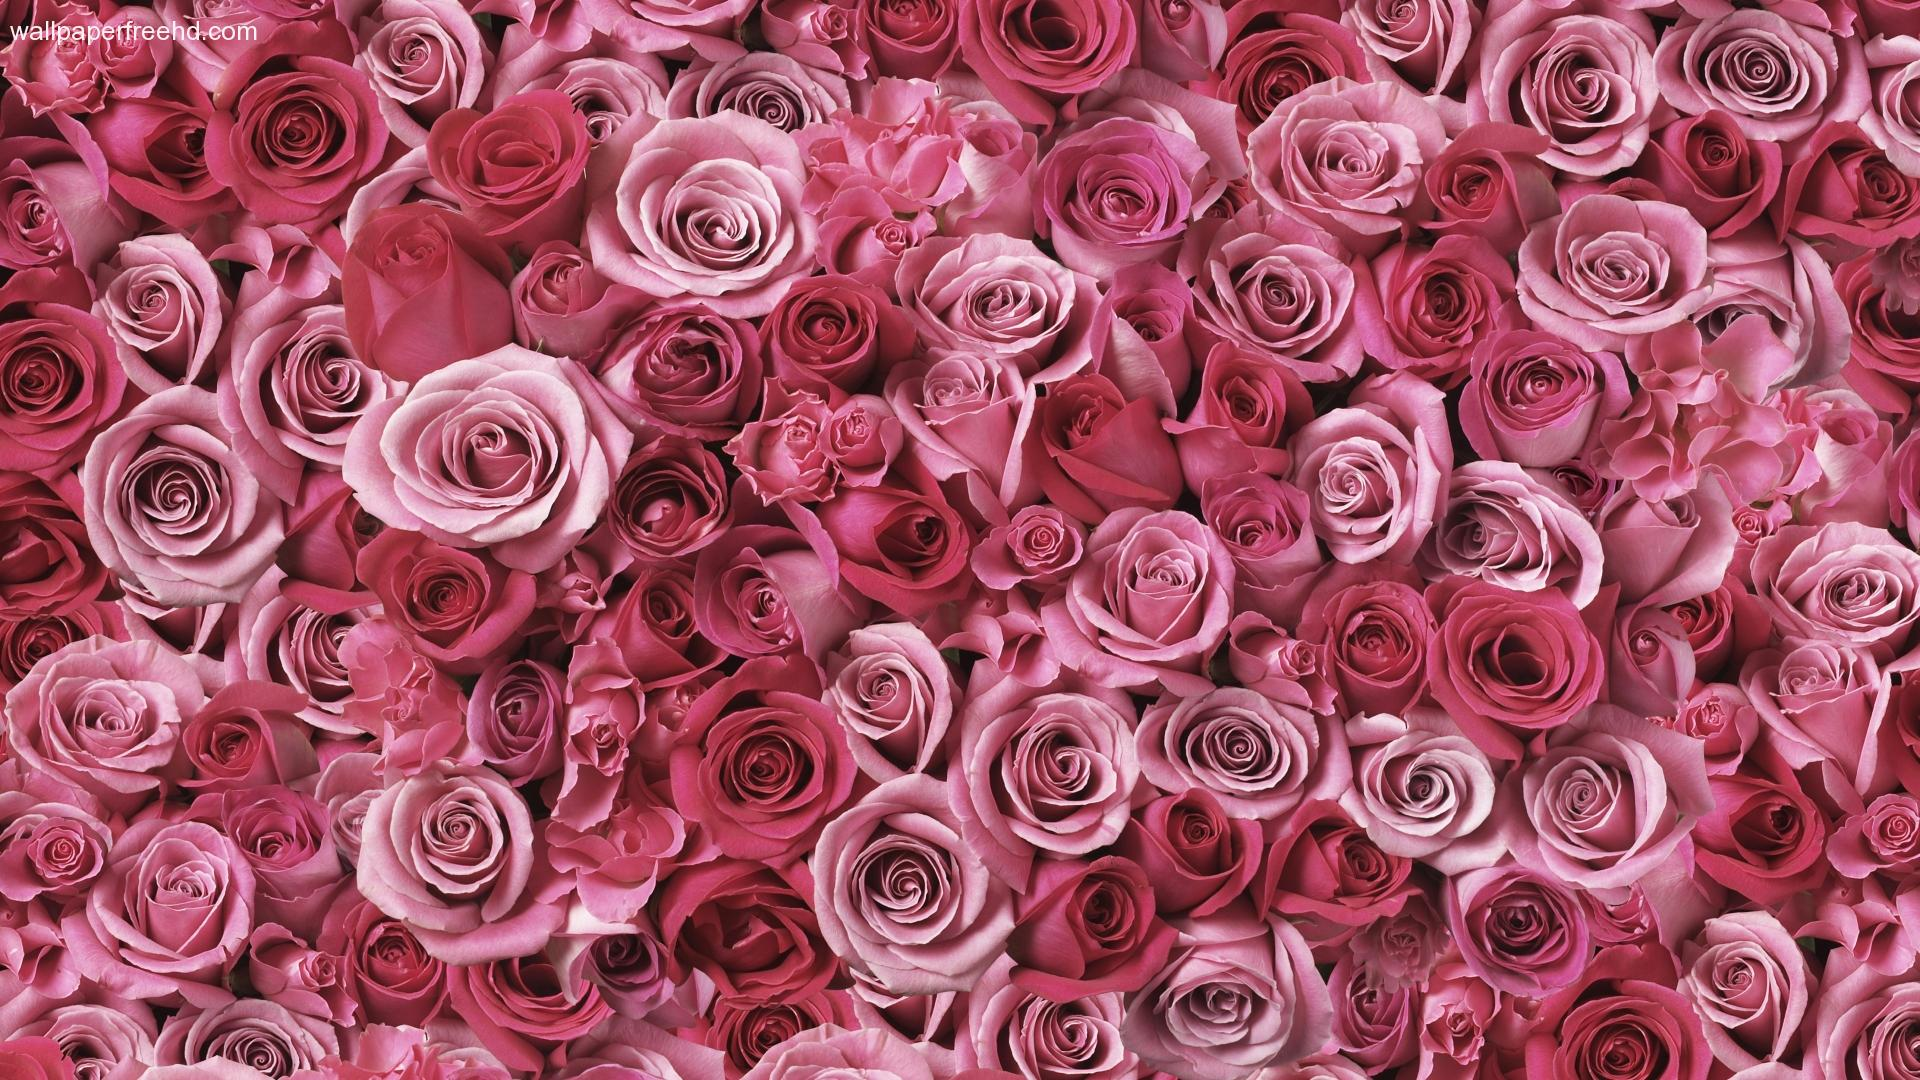 Pink Roses Free Hd Desktop Backgrounds Hd Wallpapers Hd Images